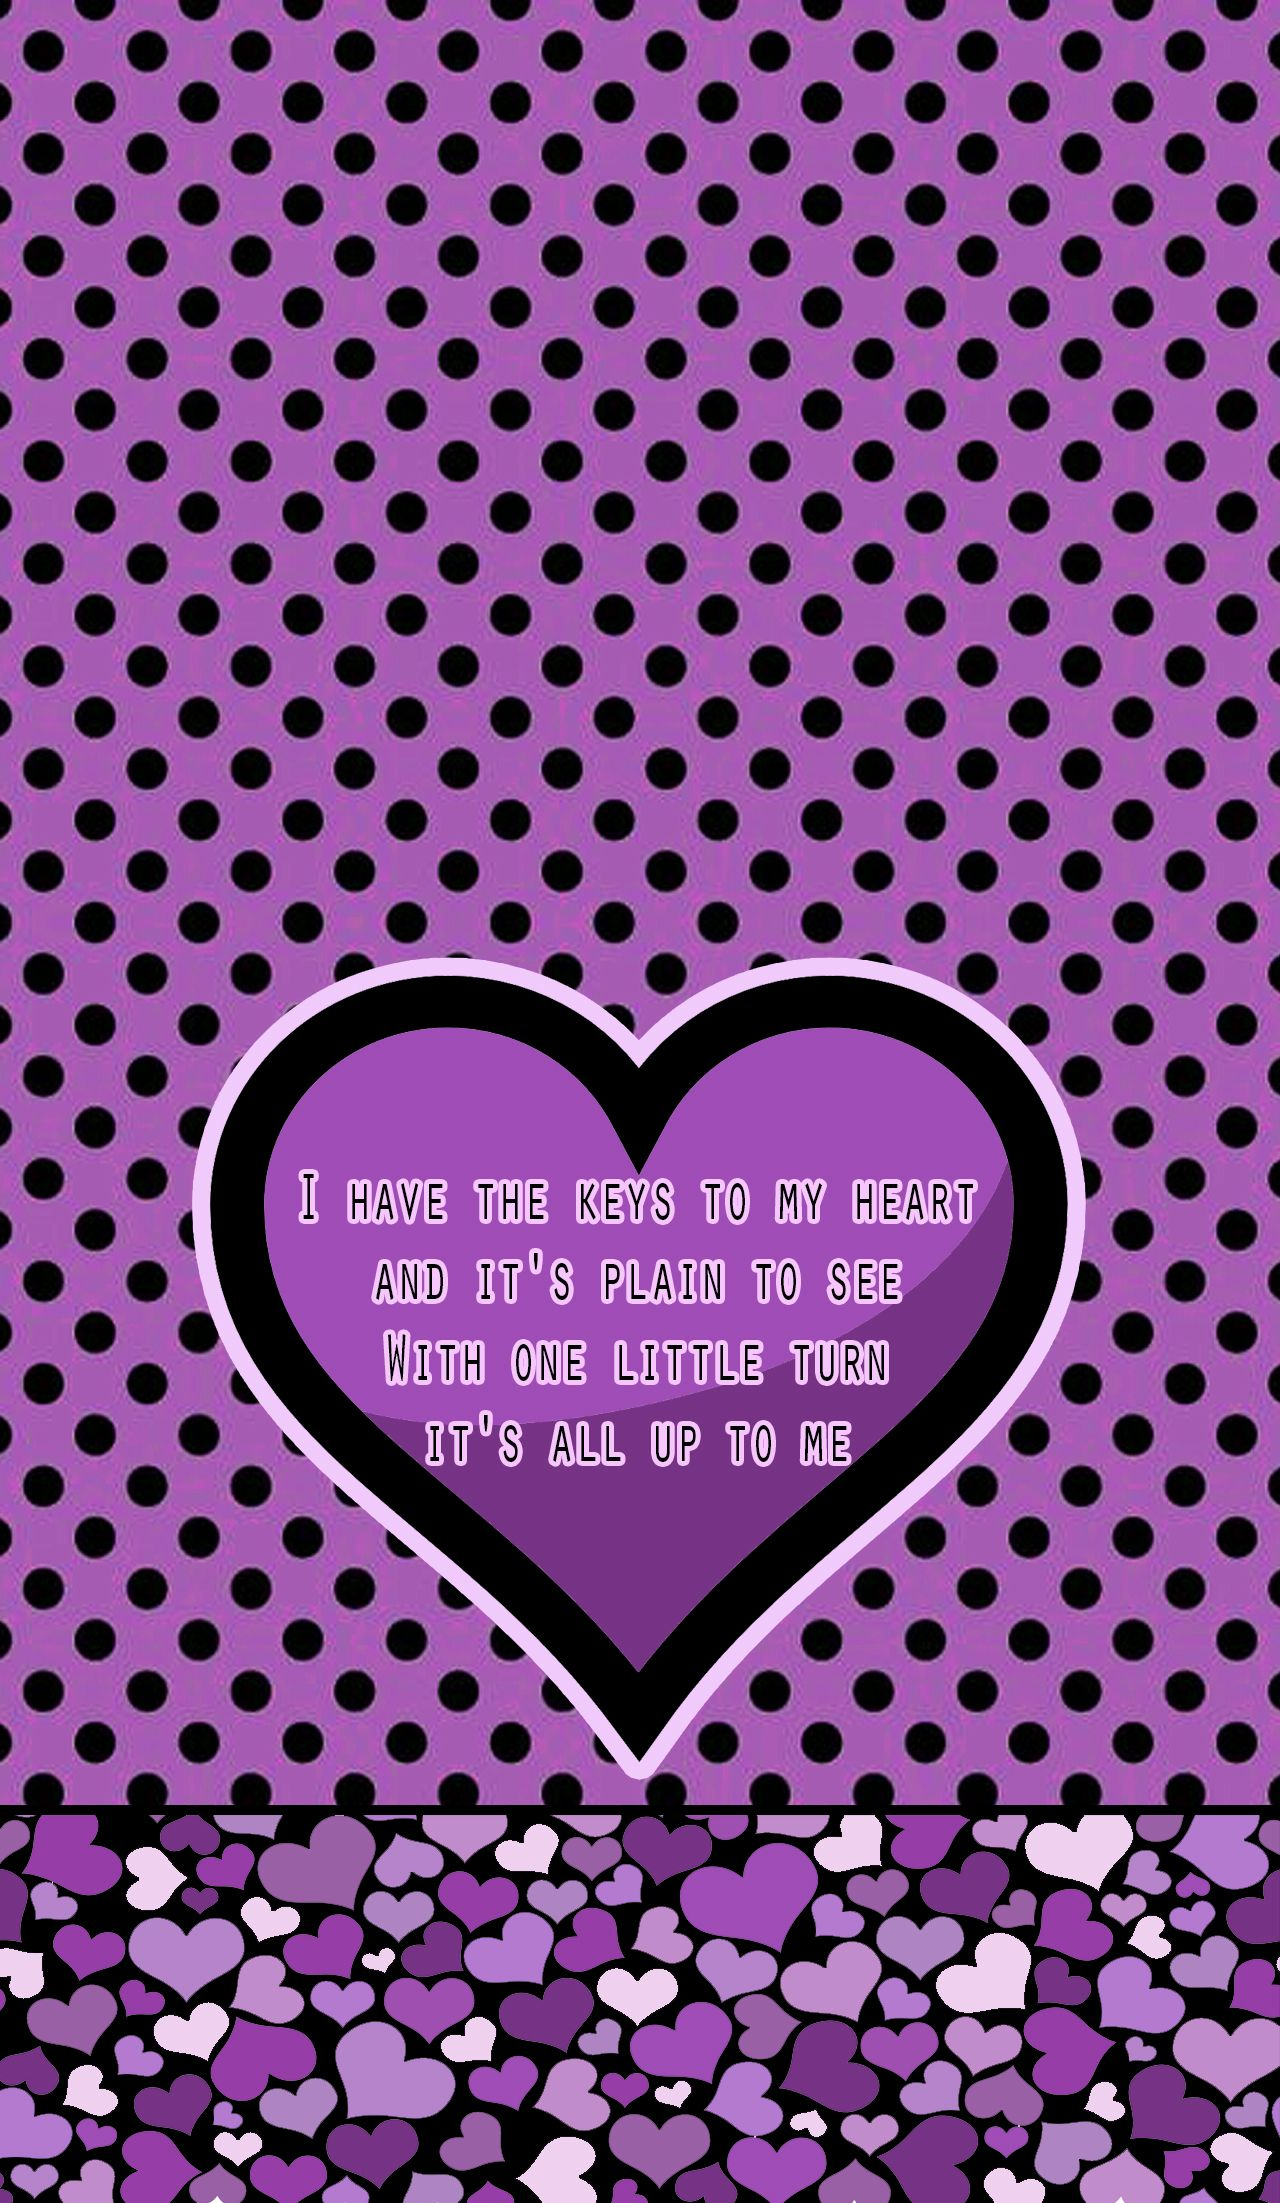 New List of Lock Screen Iphone Purple Today by Uploaded by user